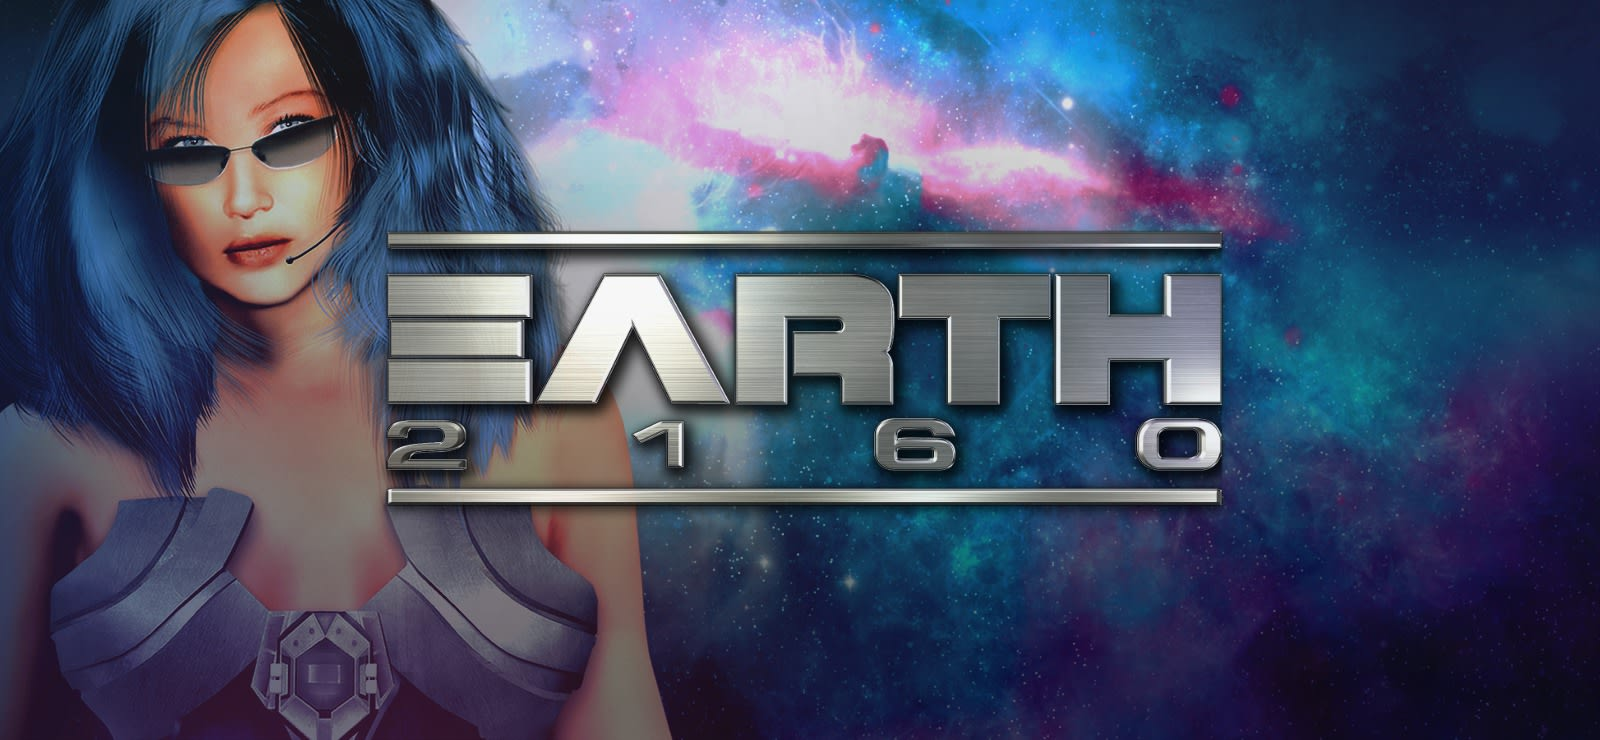 Earth 2160 varies-with-device